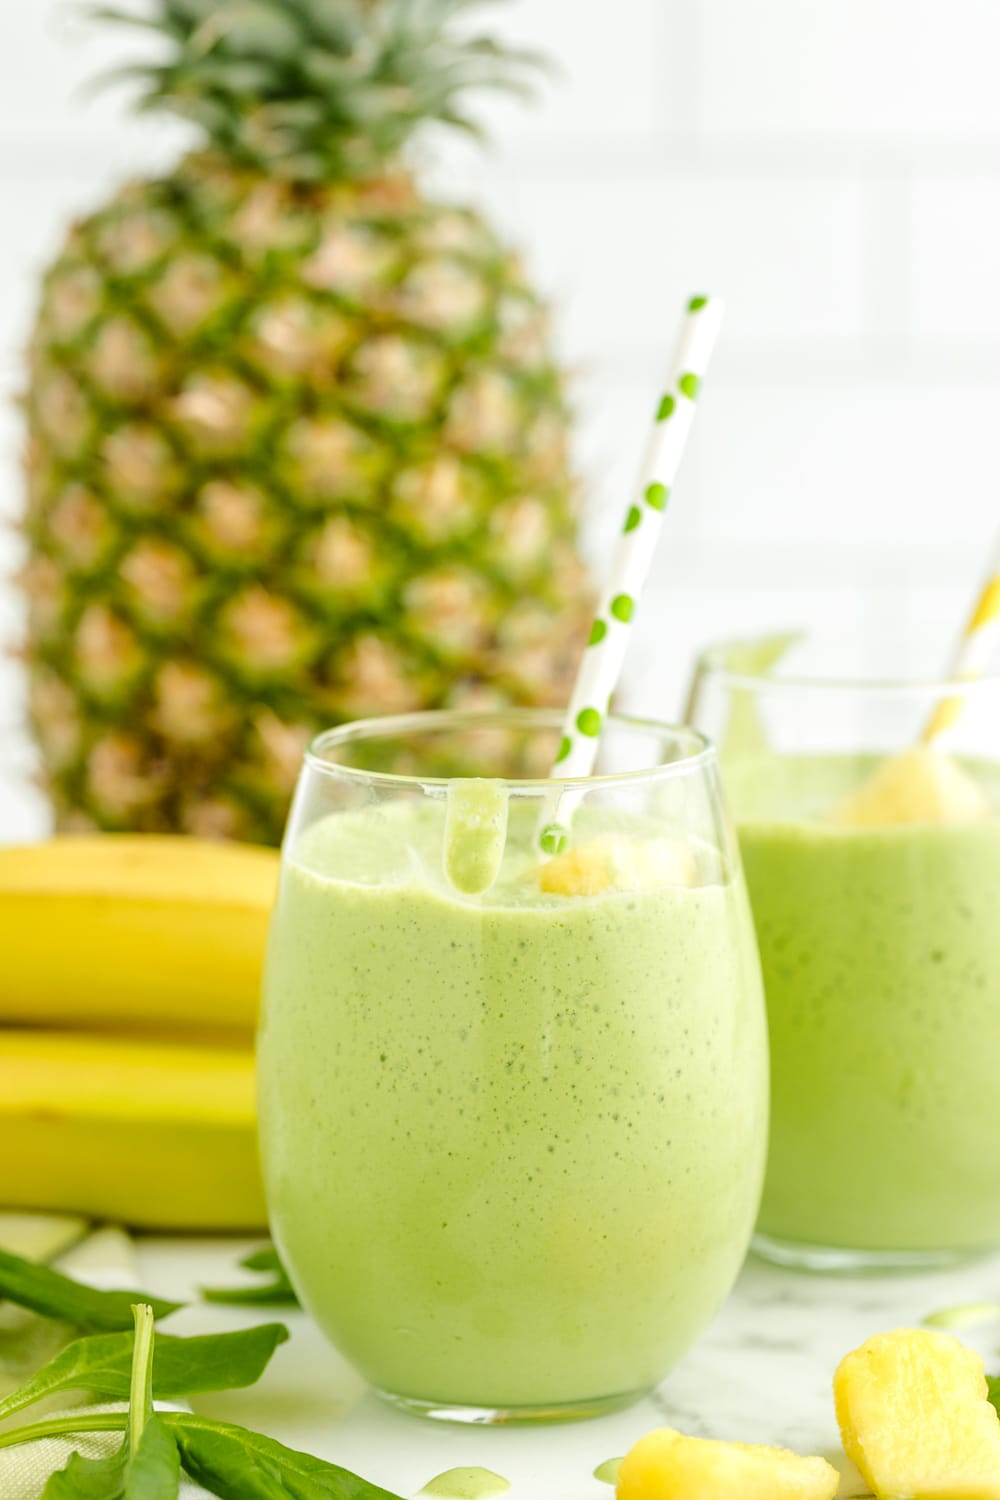 This Pineapple Green Smoothie is a delicious way to start off your morning or to enjoy anytime during the day! This green smoothie is filled with pineapple, spinach greens and loads of flavor!